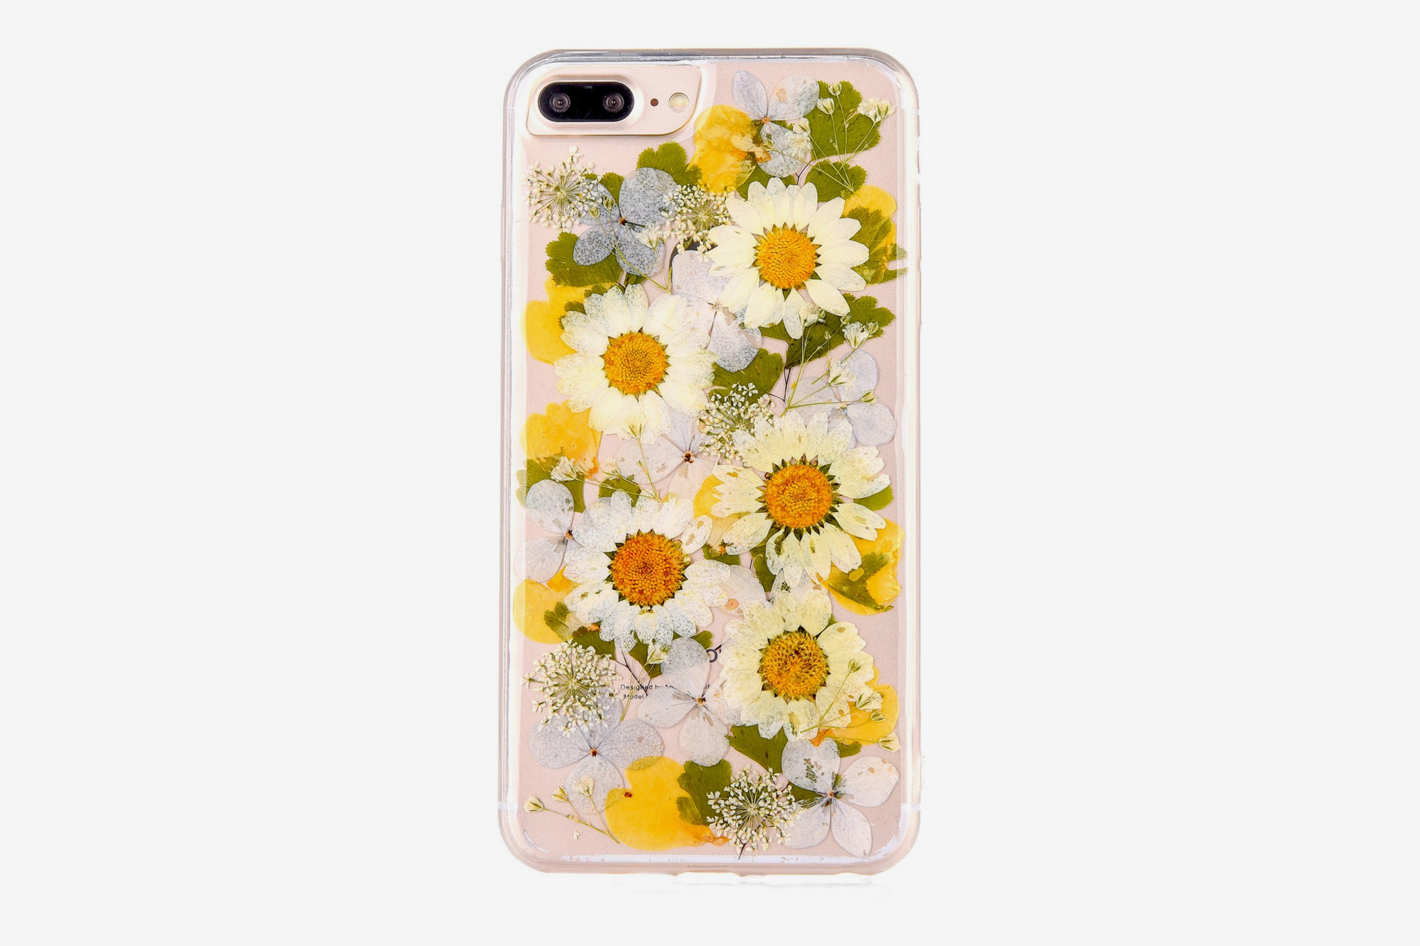 Real Flower Case for iPhone 7 Plus, Elegant TIPFLY Soft Silicone iPhone 8 Plus Cover with Handmade Pressed Dried Flowers